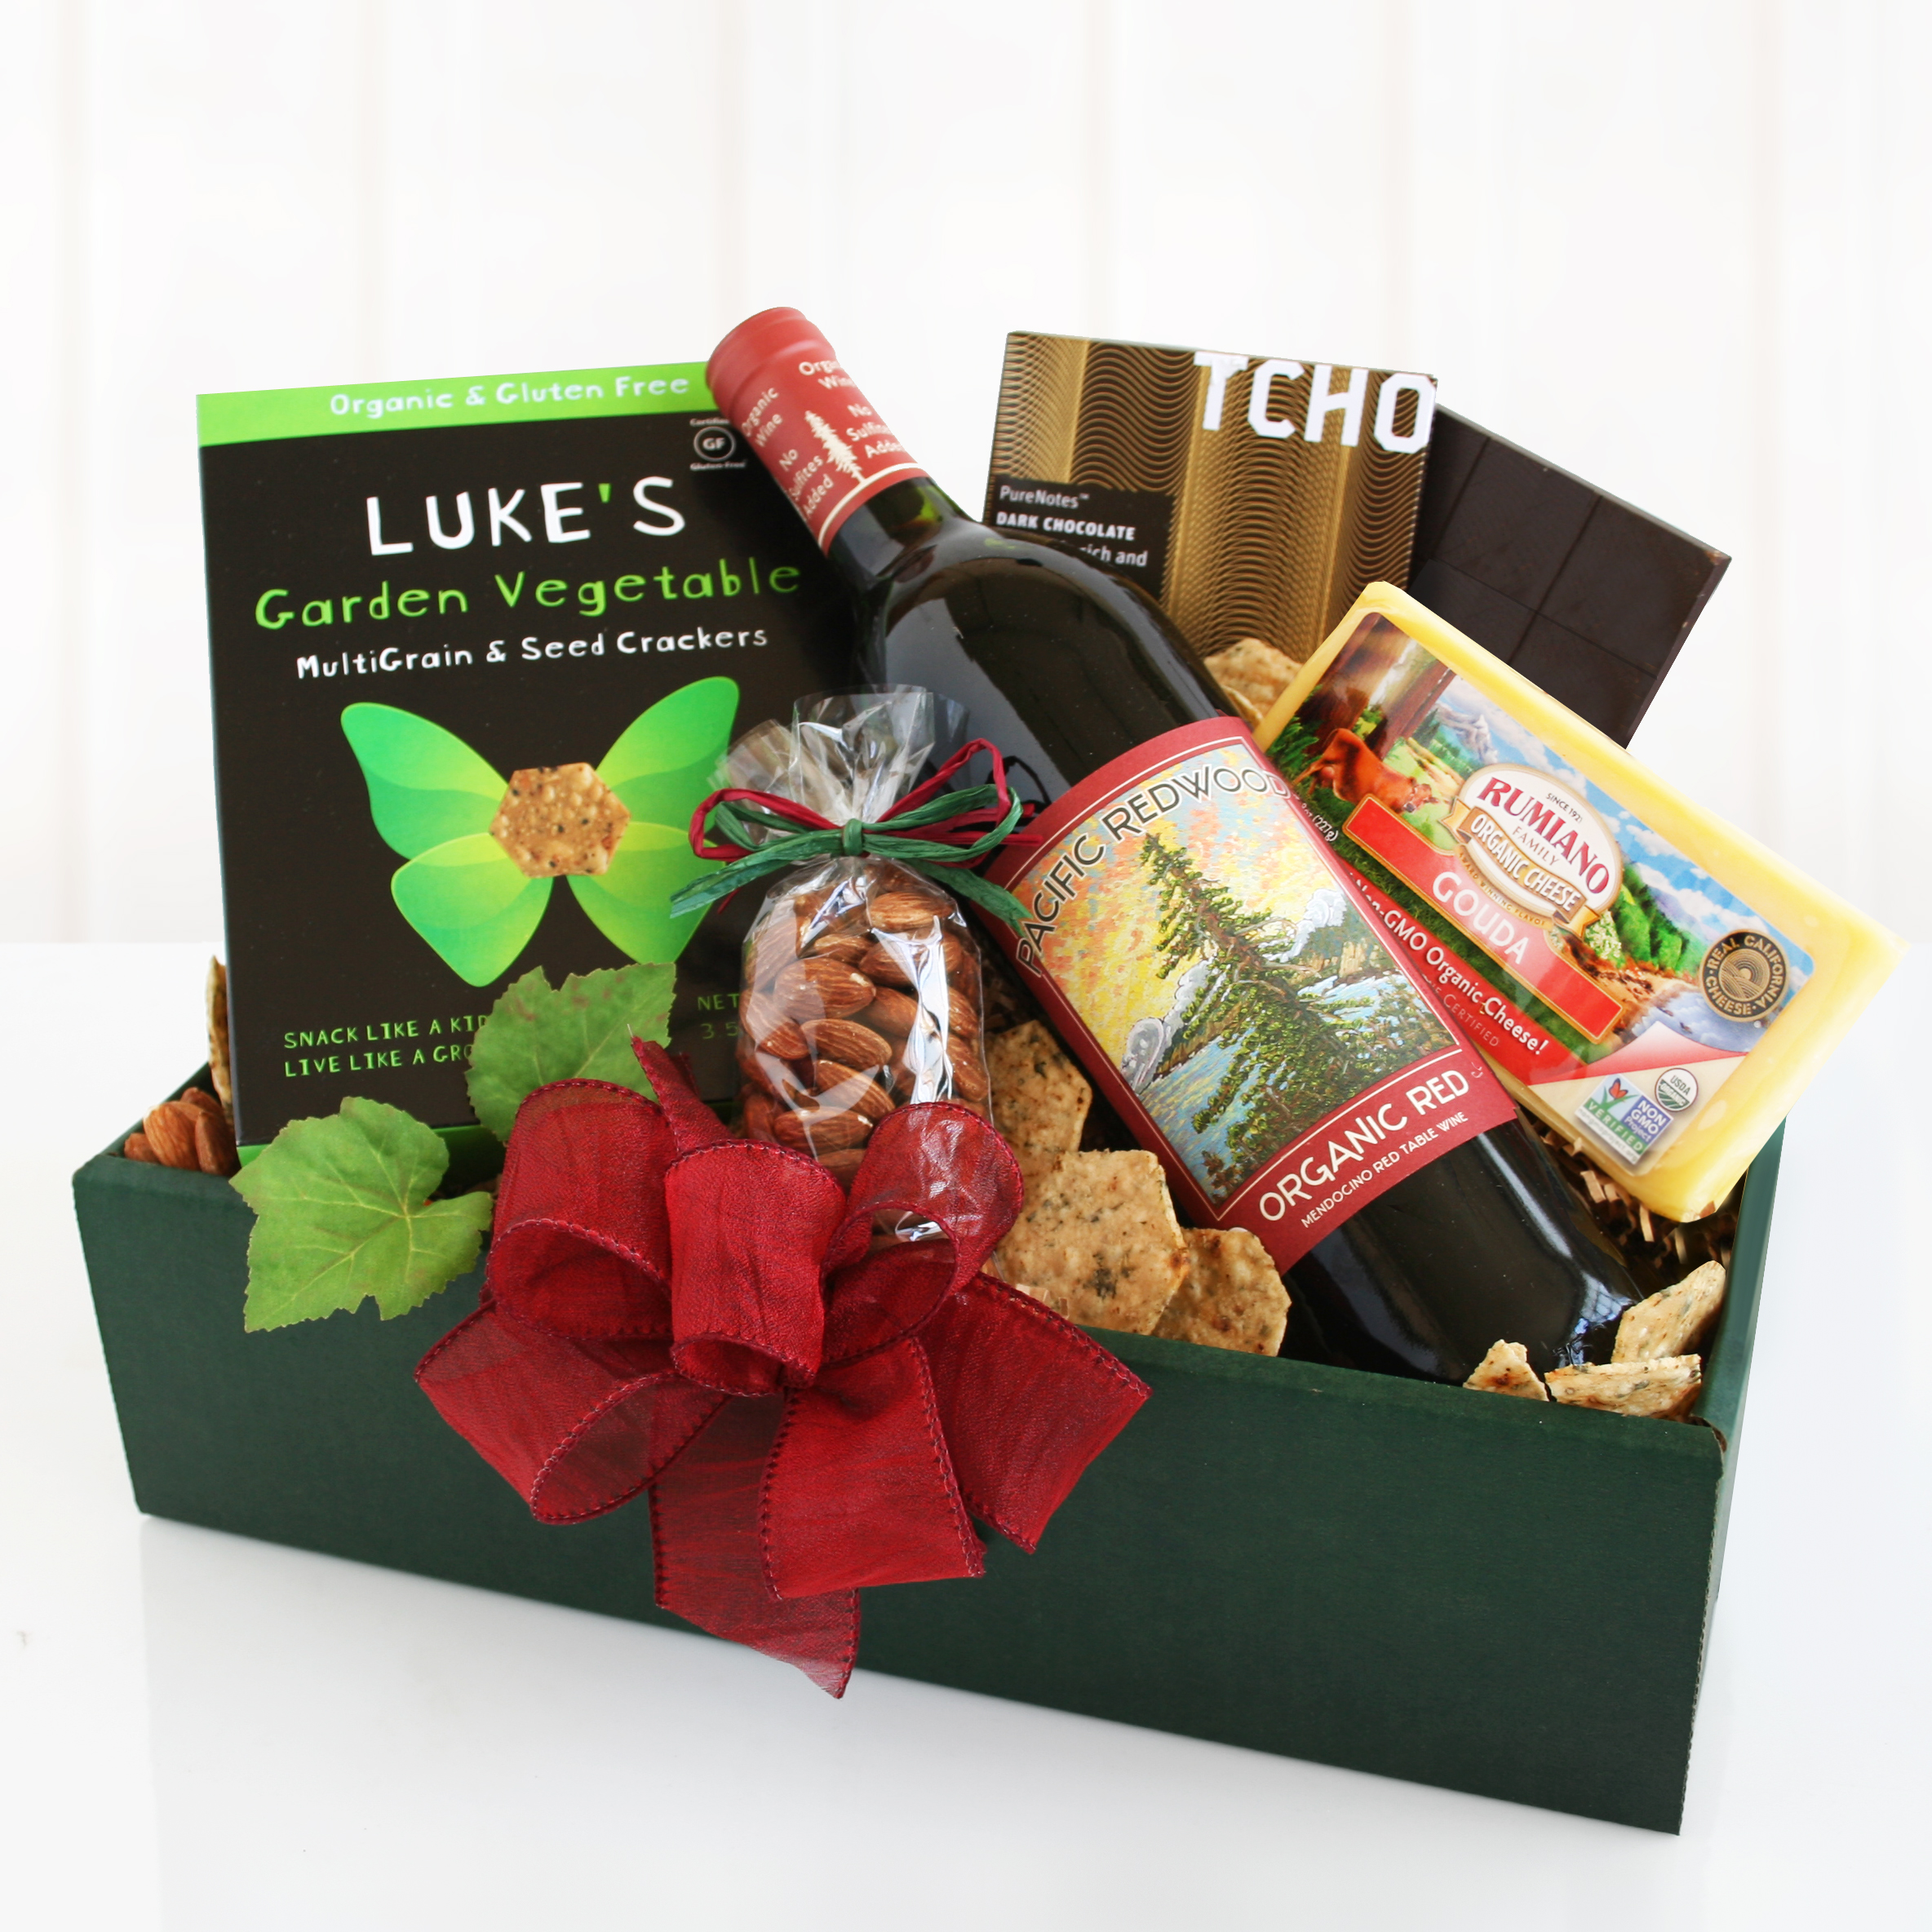 Gifts Searching for the perfect present for your significant other, friend, family member, baby or kid? The Ultimate Green Store carries the most extensive array of organic gift ideas and environment friendly gifts for every occasion.